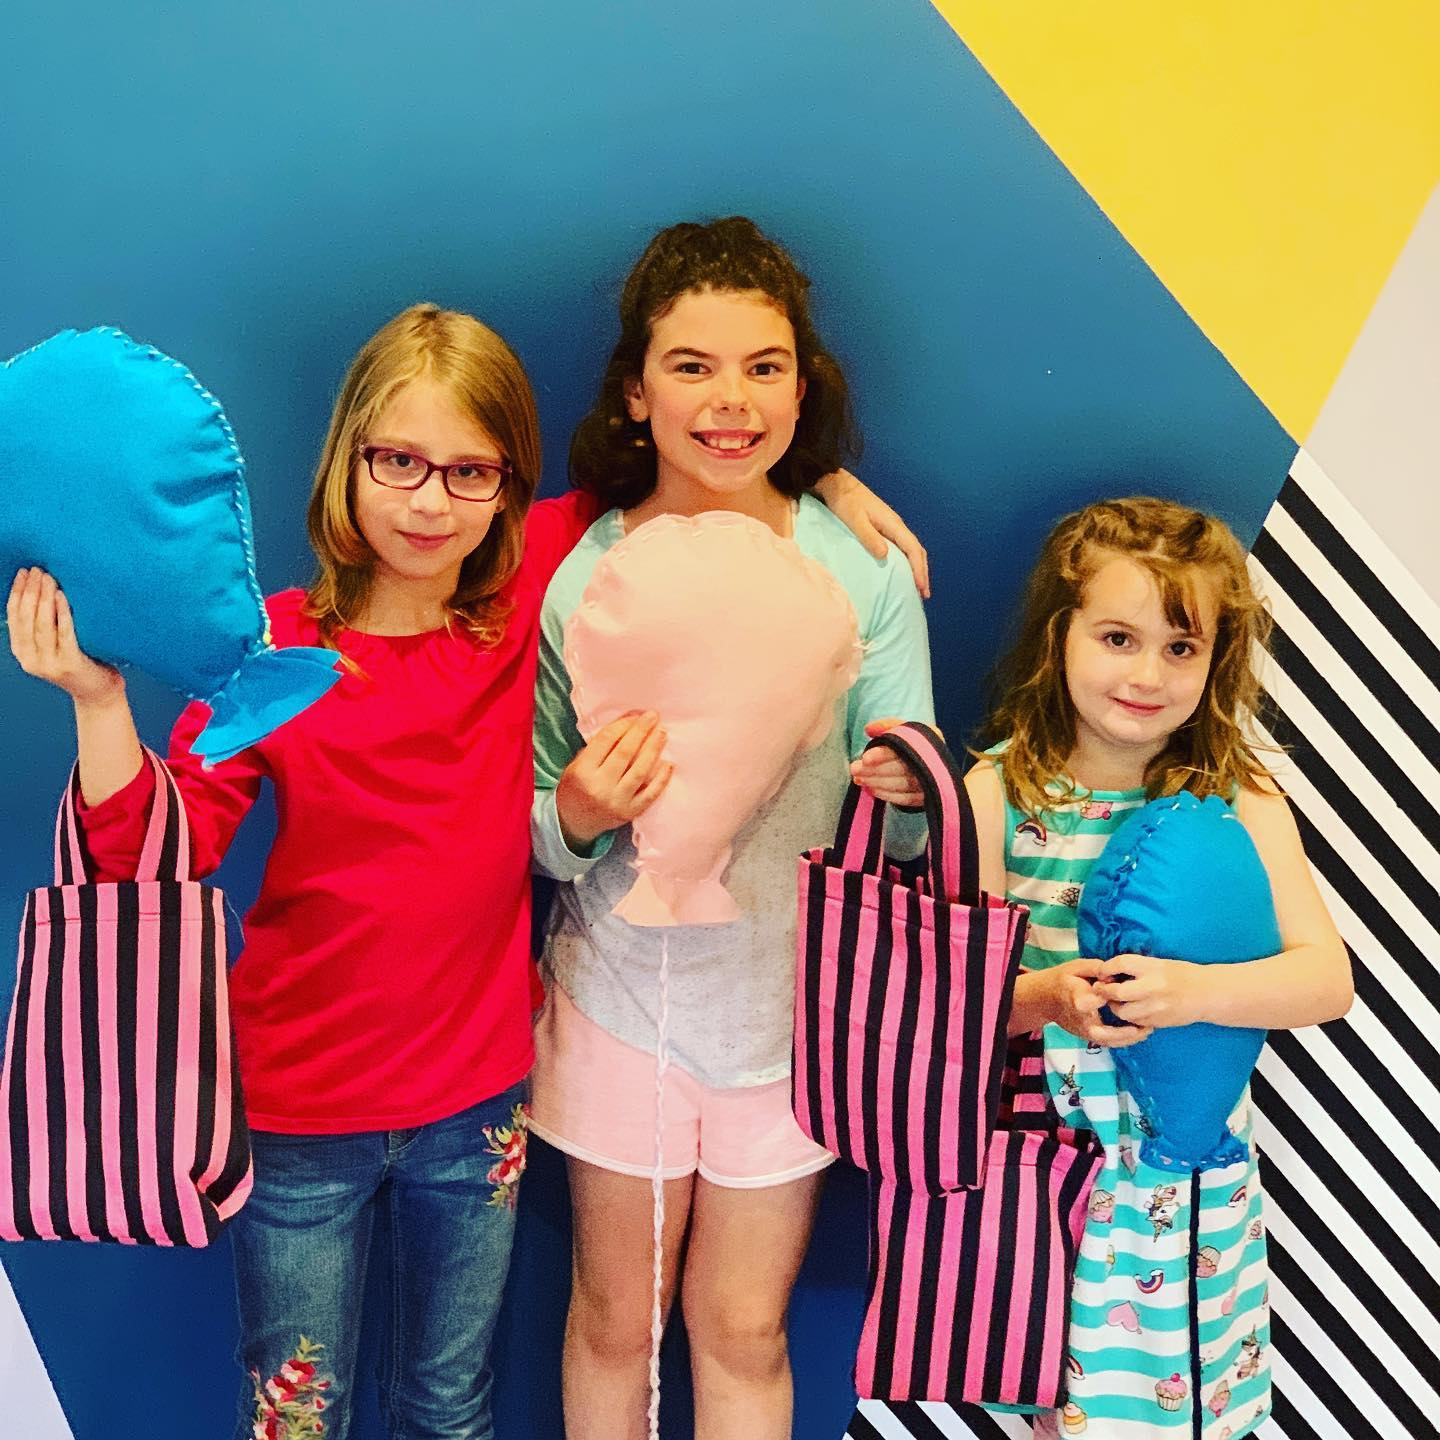 Sewing Birthday Parties - Come sew with us to celebrate a special birthday!